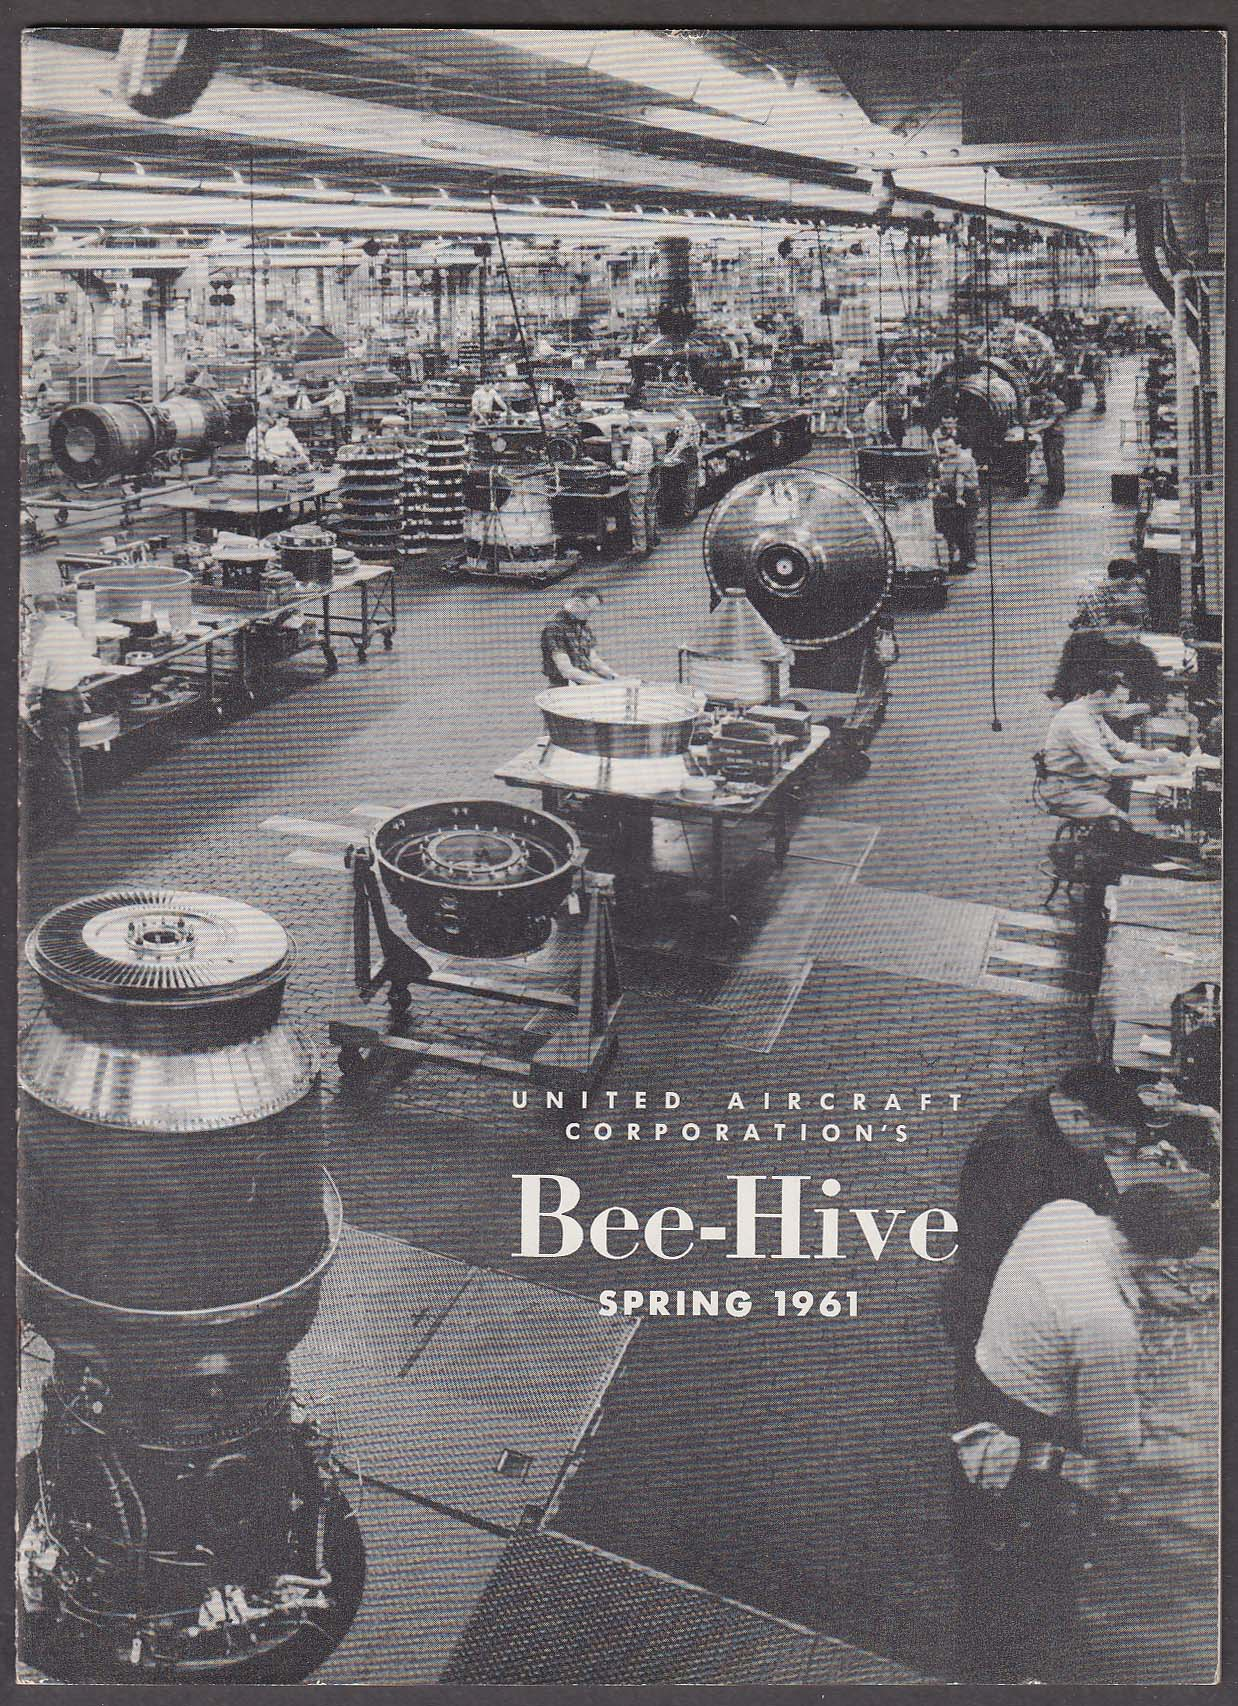 BEE-HIVE United Aircraft Corporation SD-5 Chimps in Space + Spring 1961